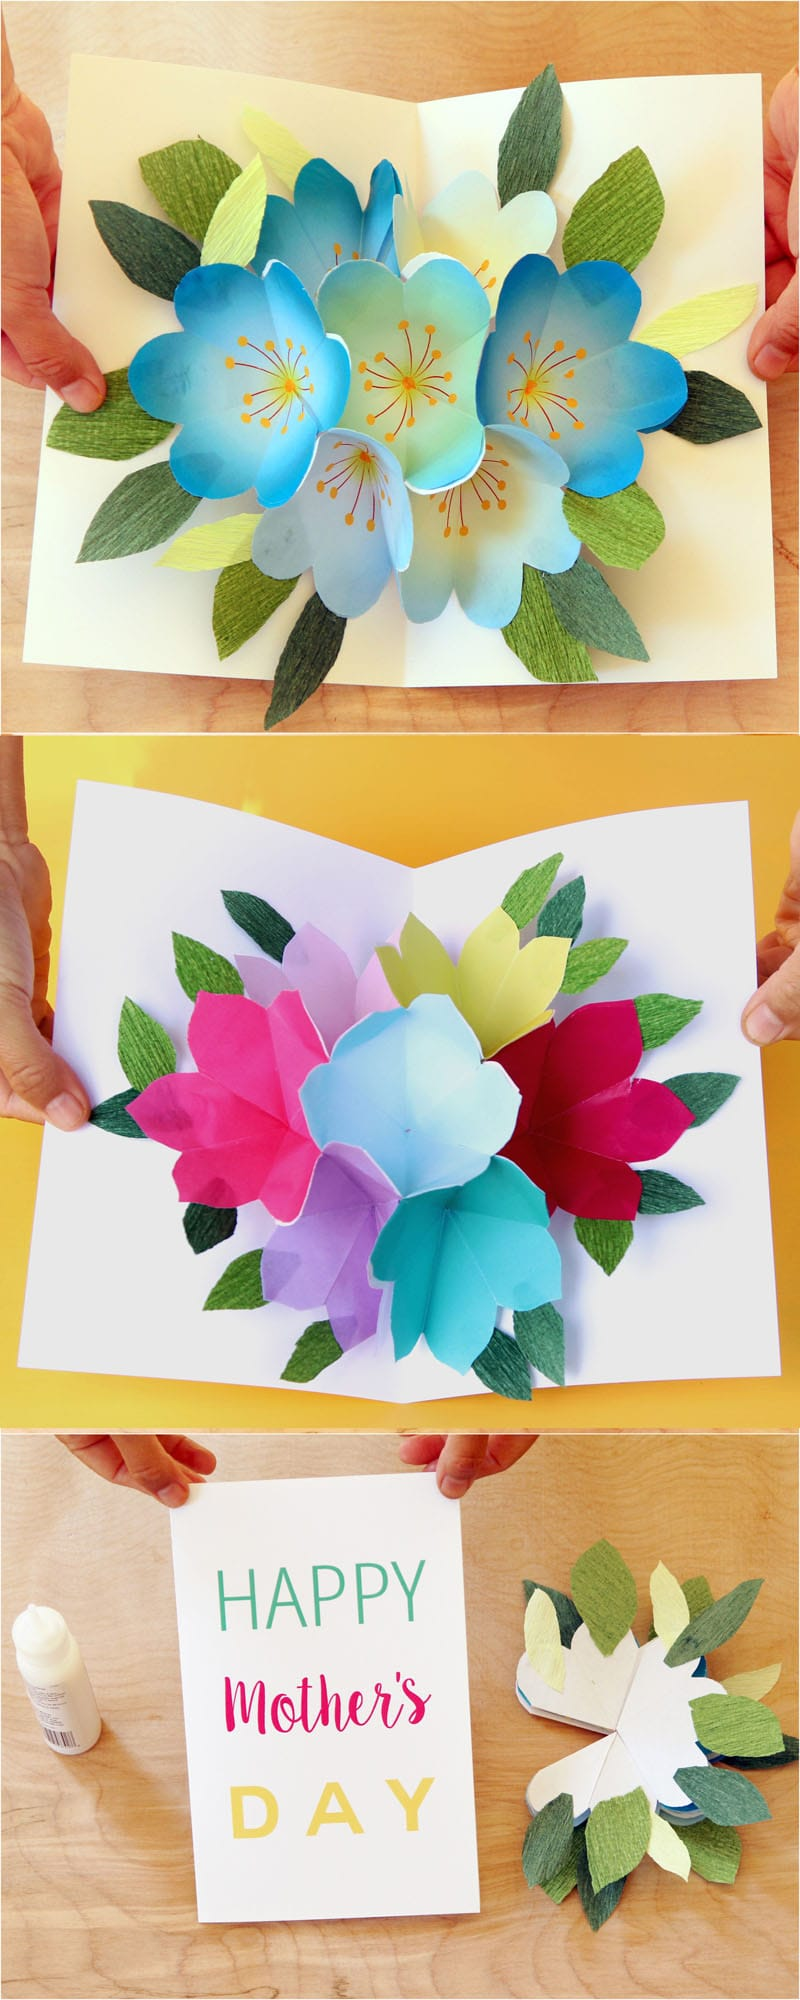 This is a picture of Free Printable Pop Up Card Templates pertaining to simple